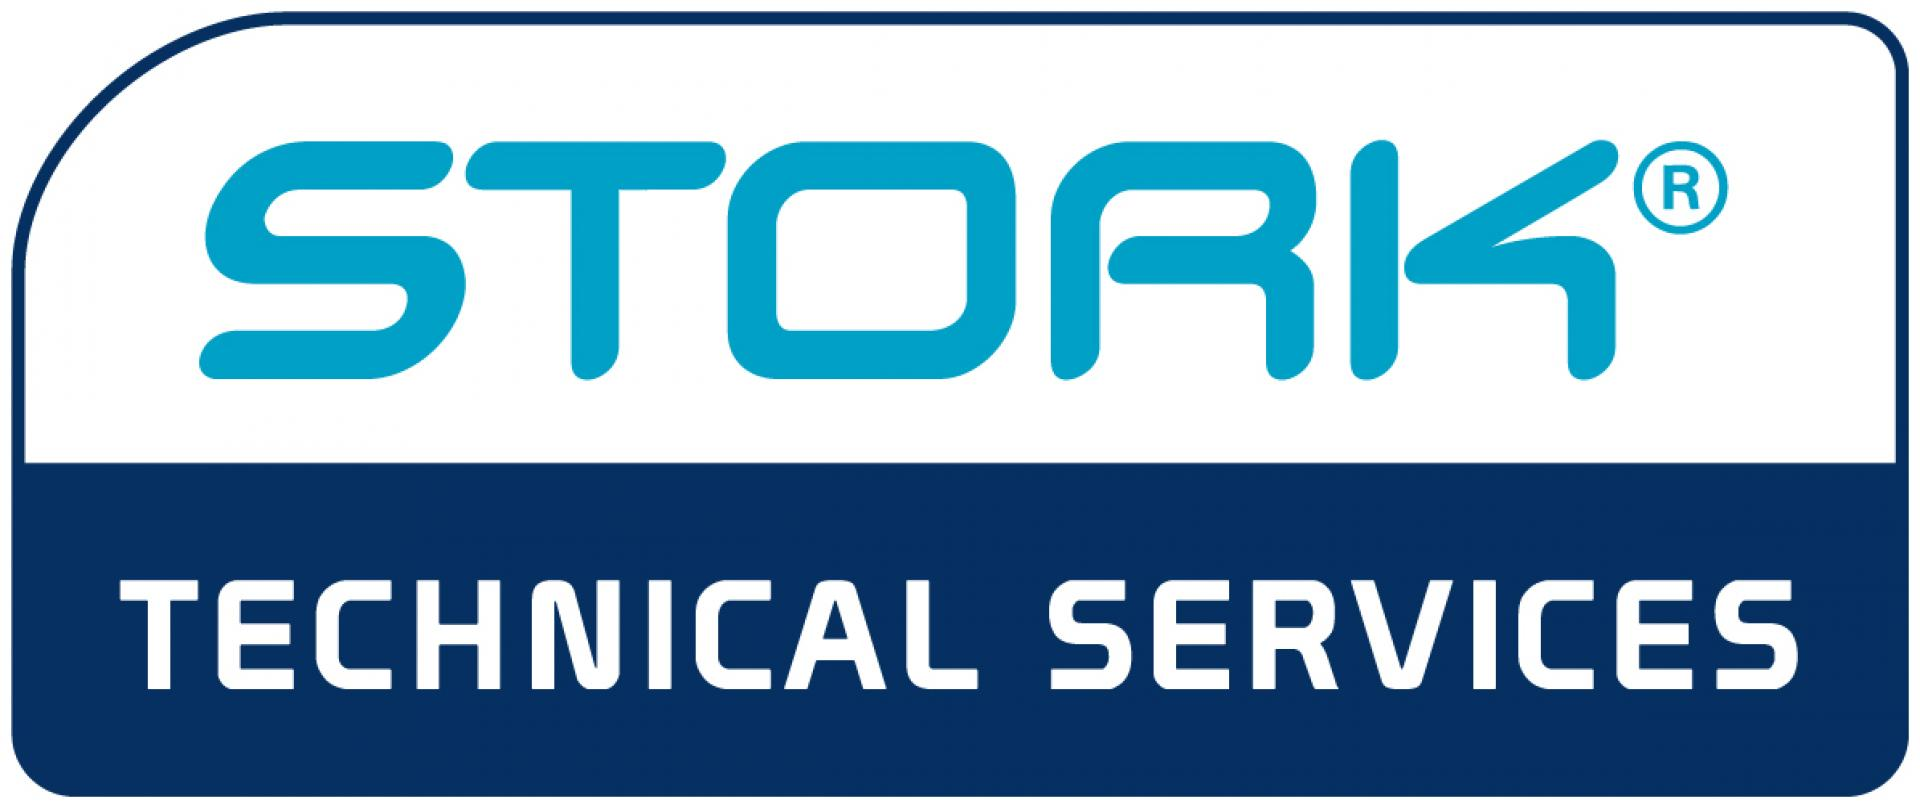 Indoor Team Building with Stork Technical Services